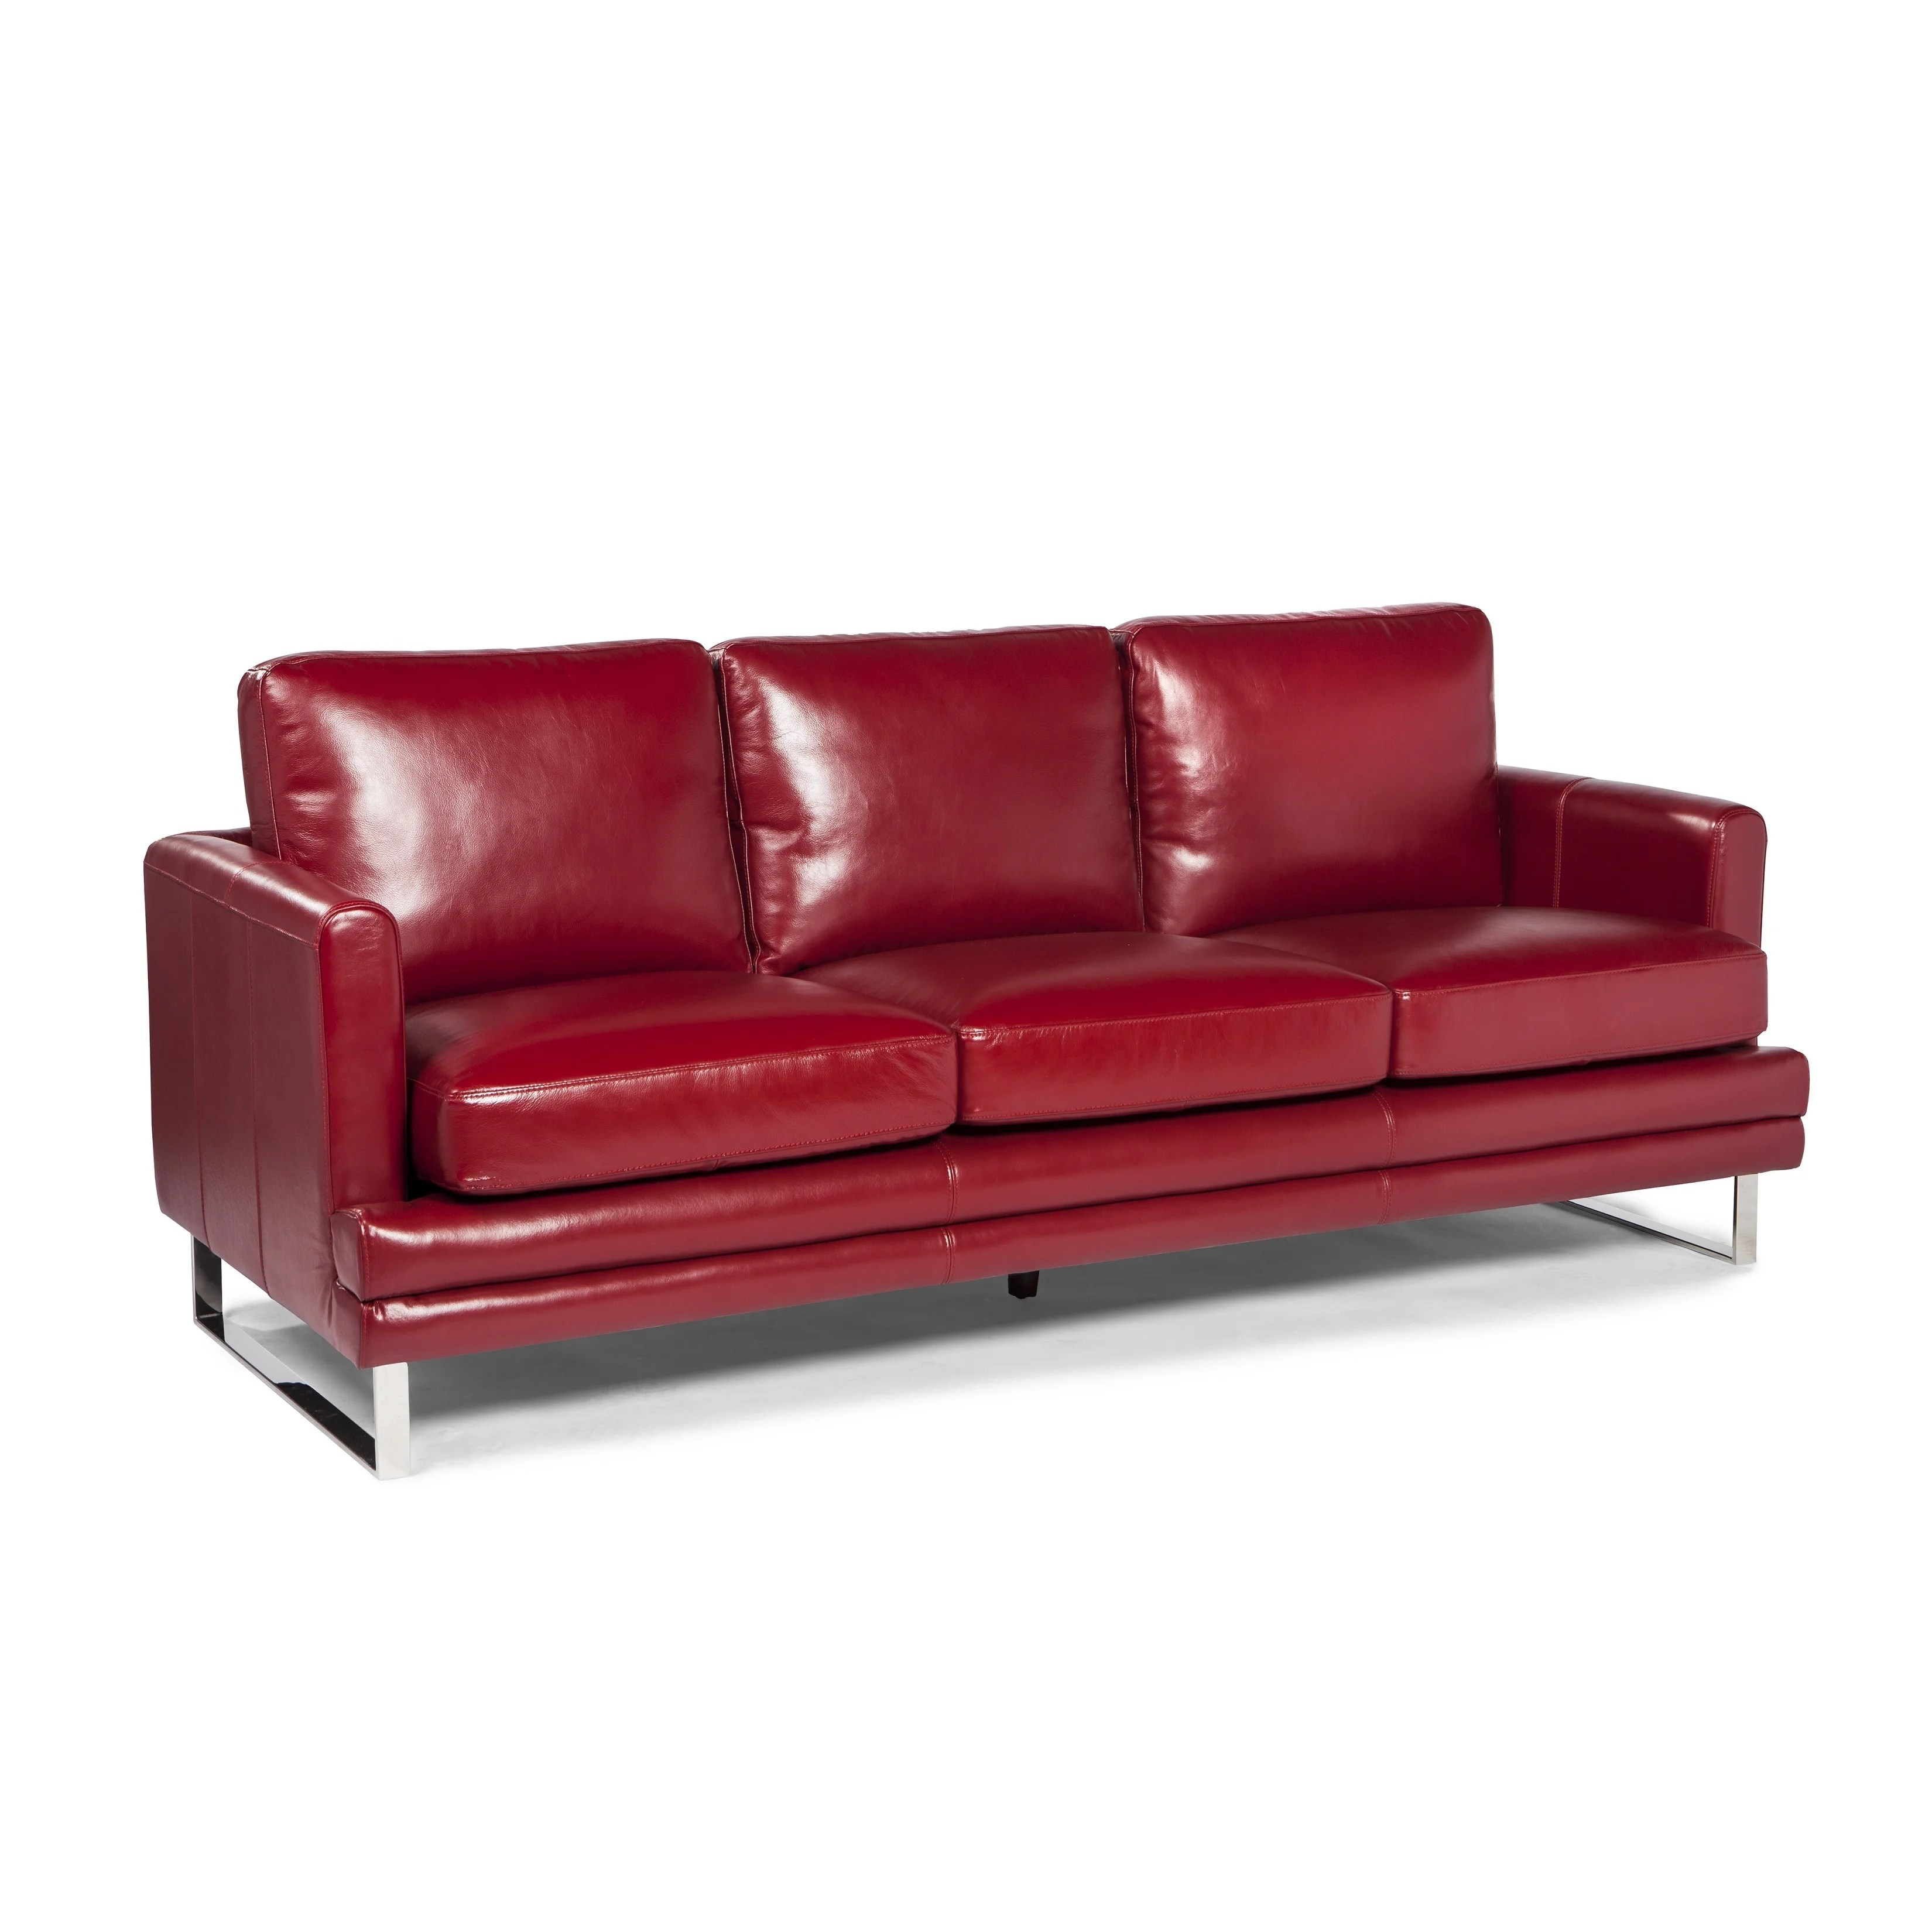 Melbourne Collection Red Leather Sofa By Lazzaro Leather Overstock 14061538